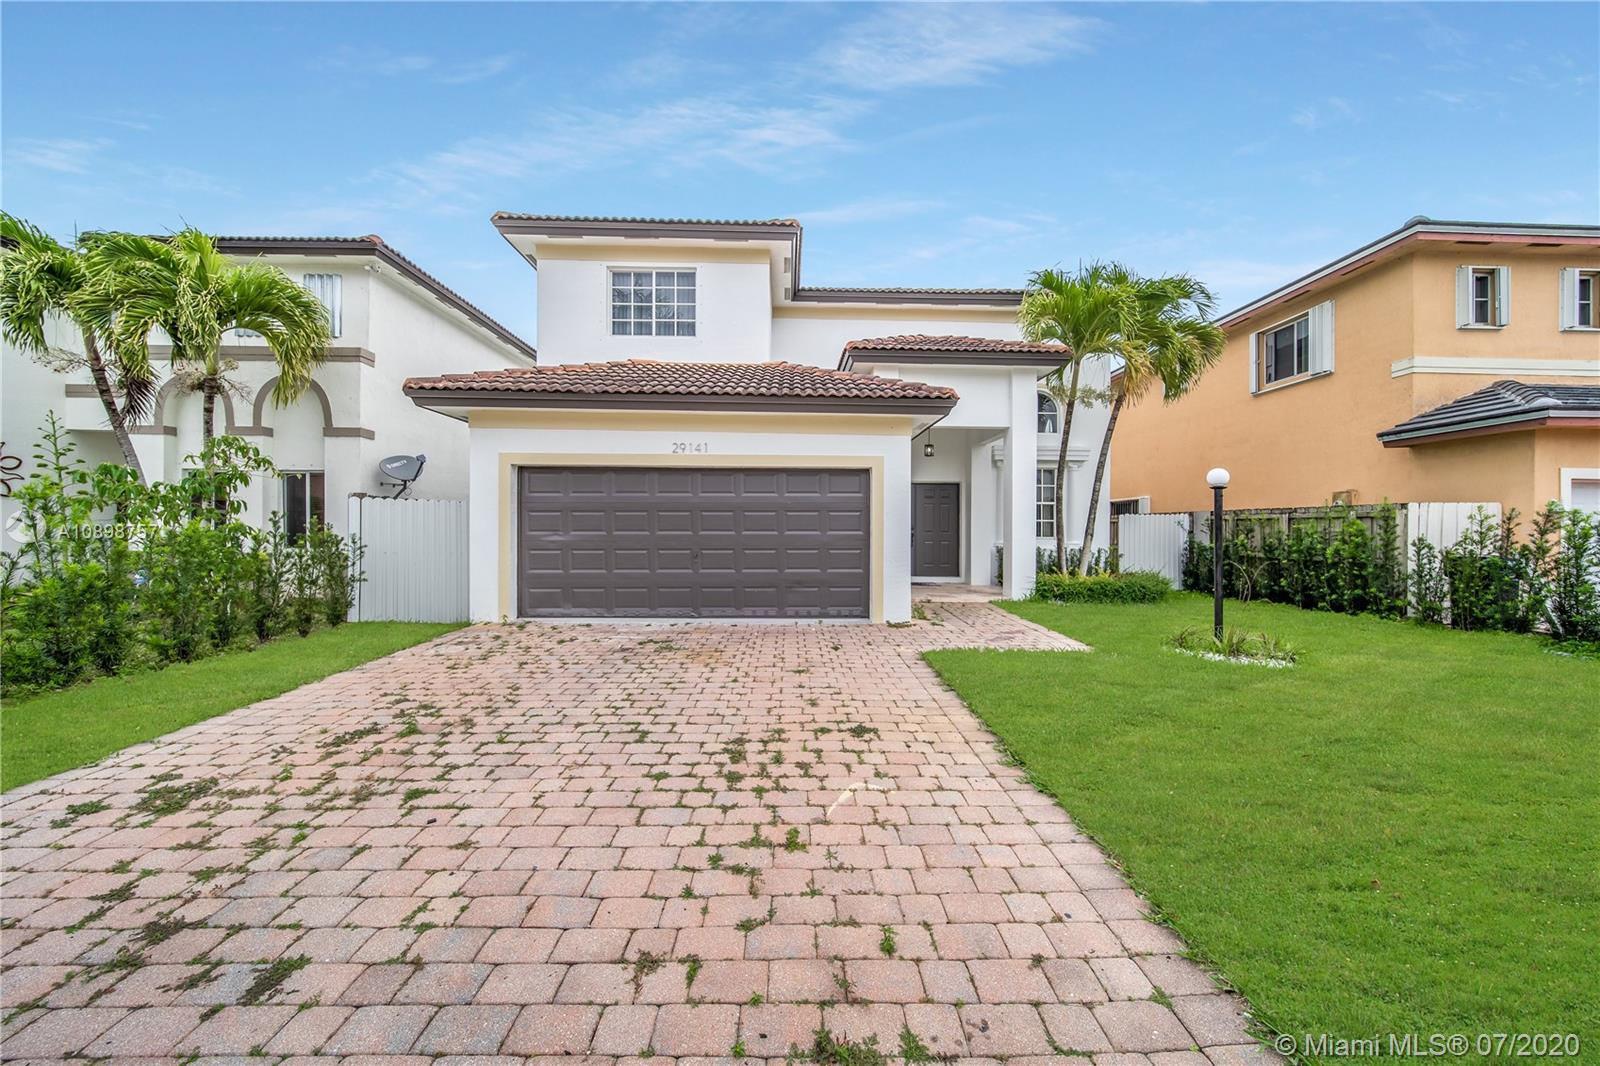 29141 SW 134th Ct Property Photo - Homestead, FL real estate listing